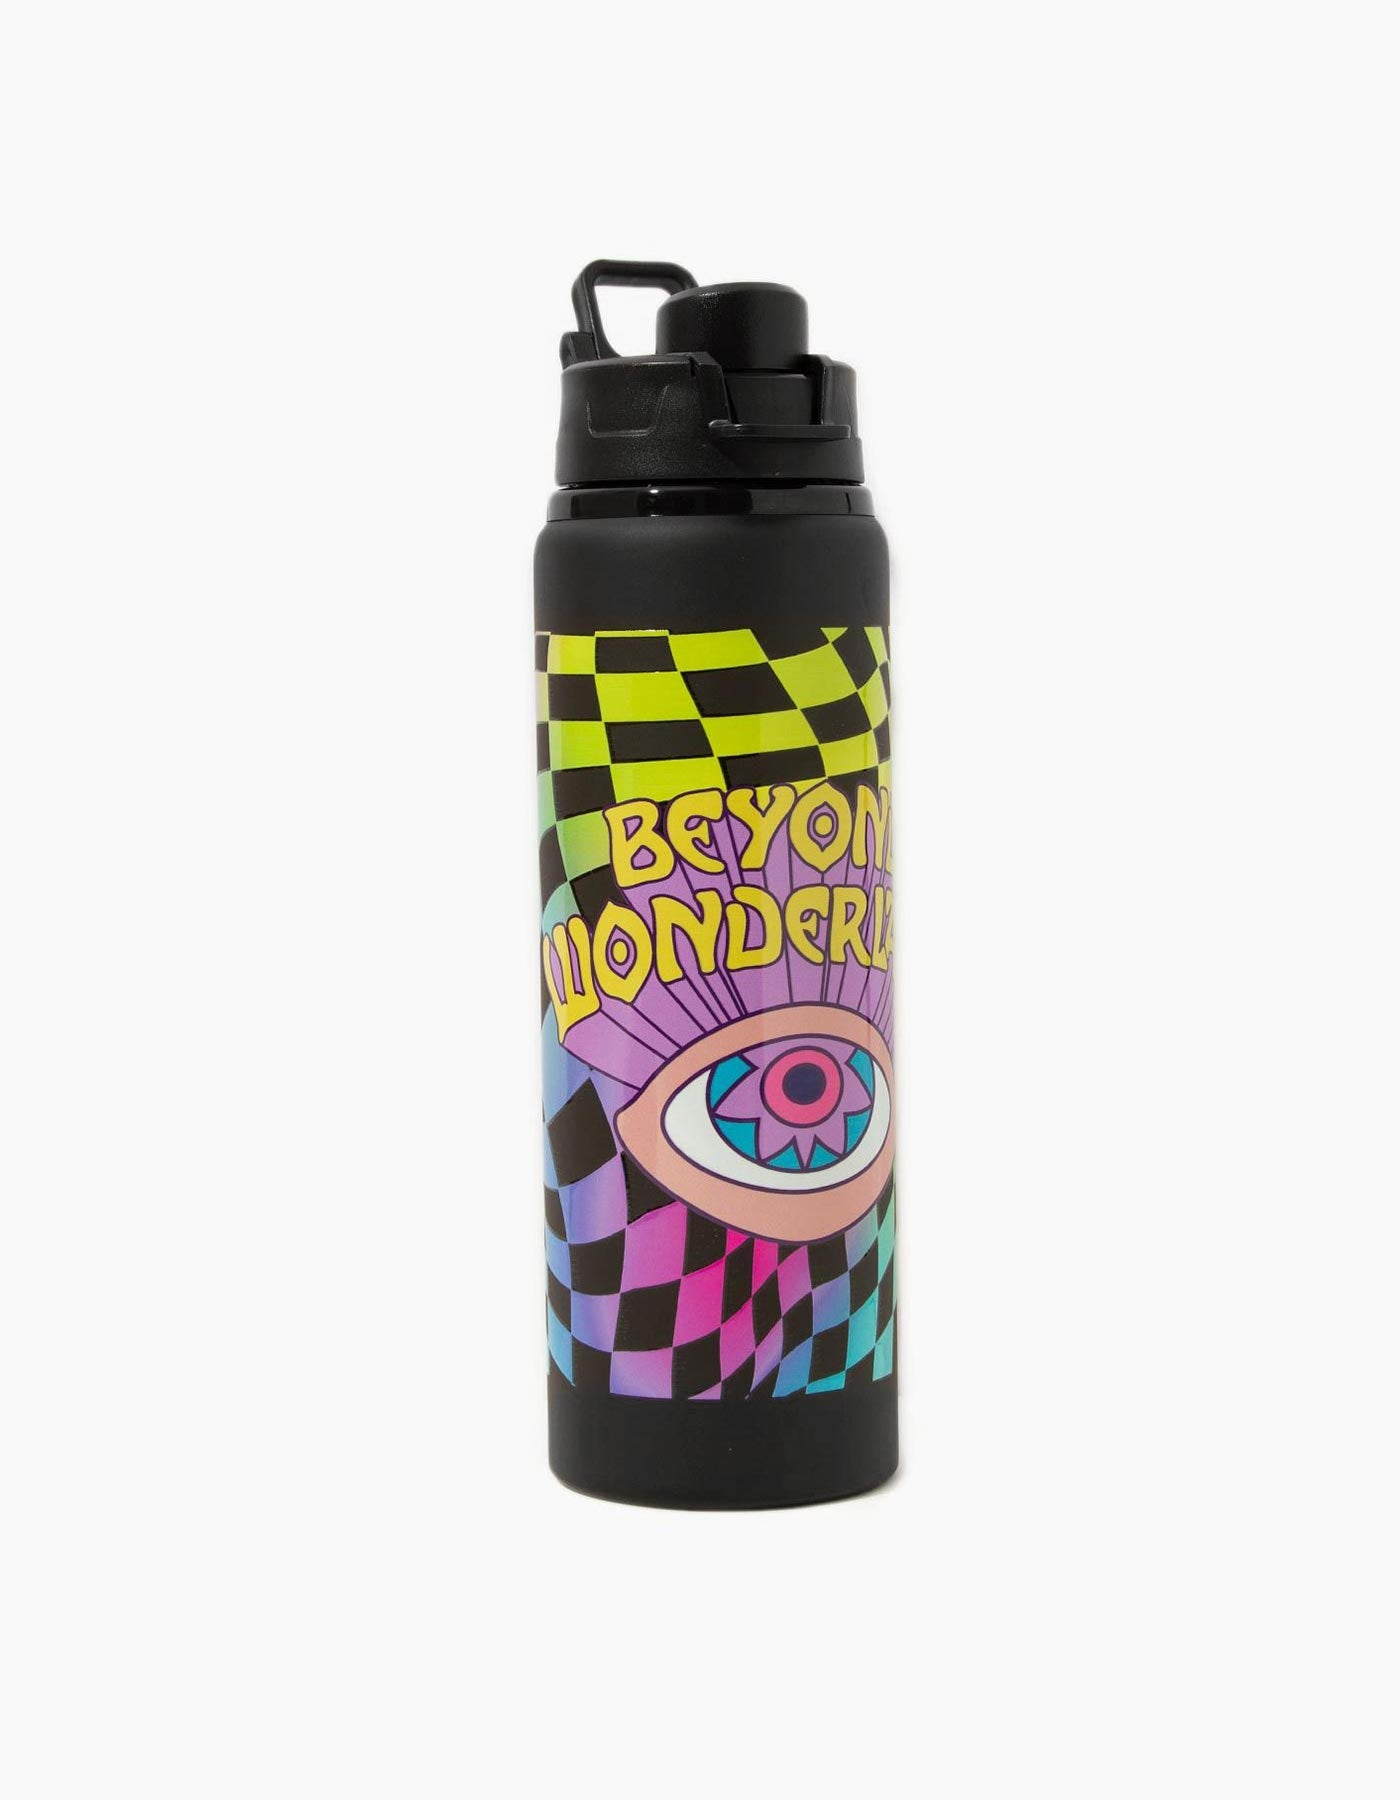 Beyond Wonderland Visionary Water Bottle